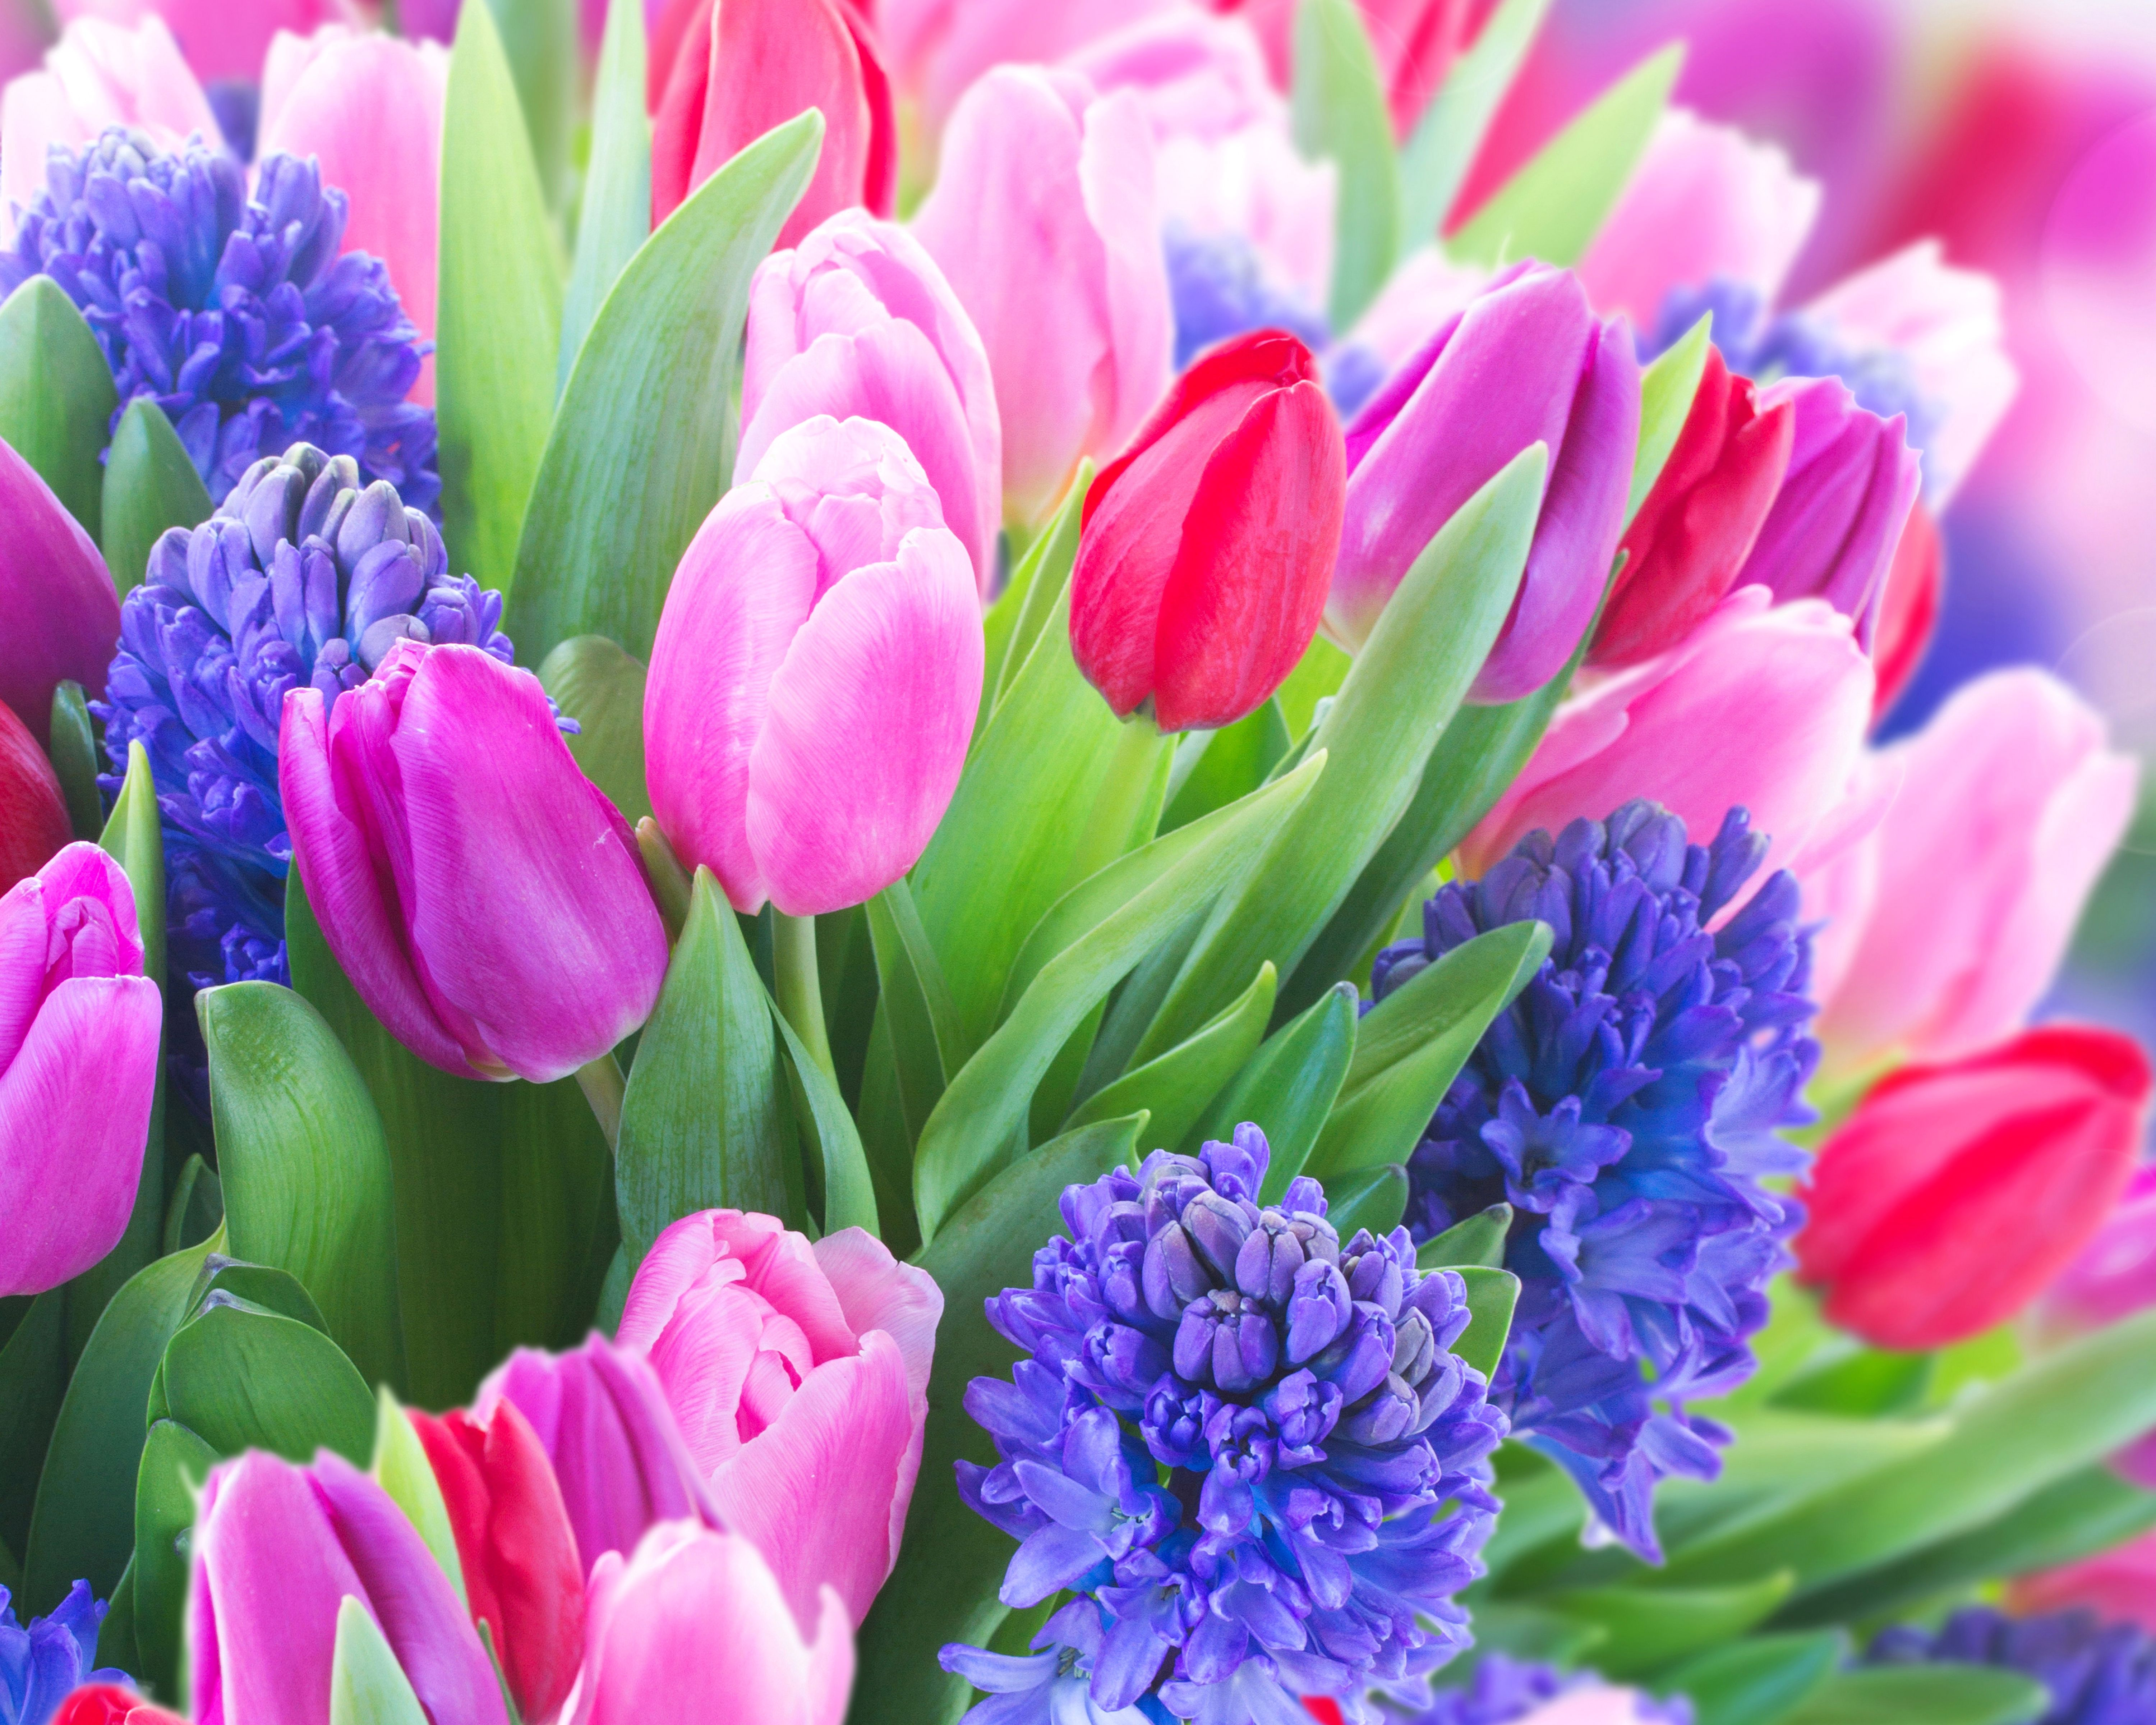 6000x4800 Wallpapers Tulips Flowers Hyacinths Closeup 6000x4800